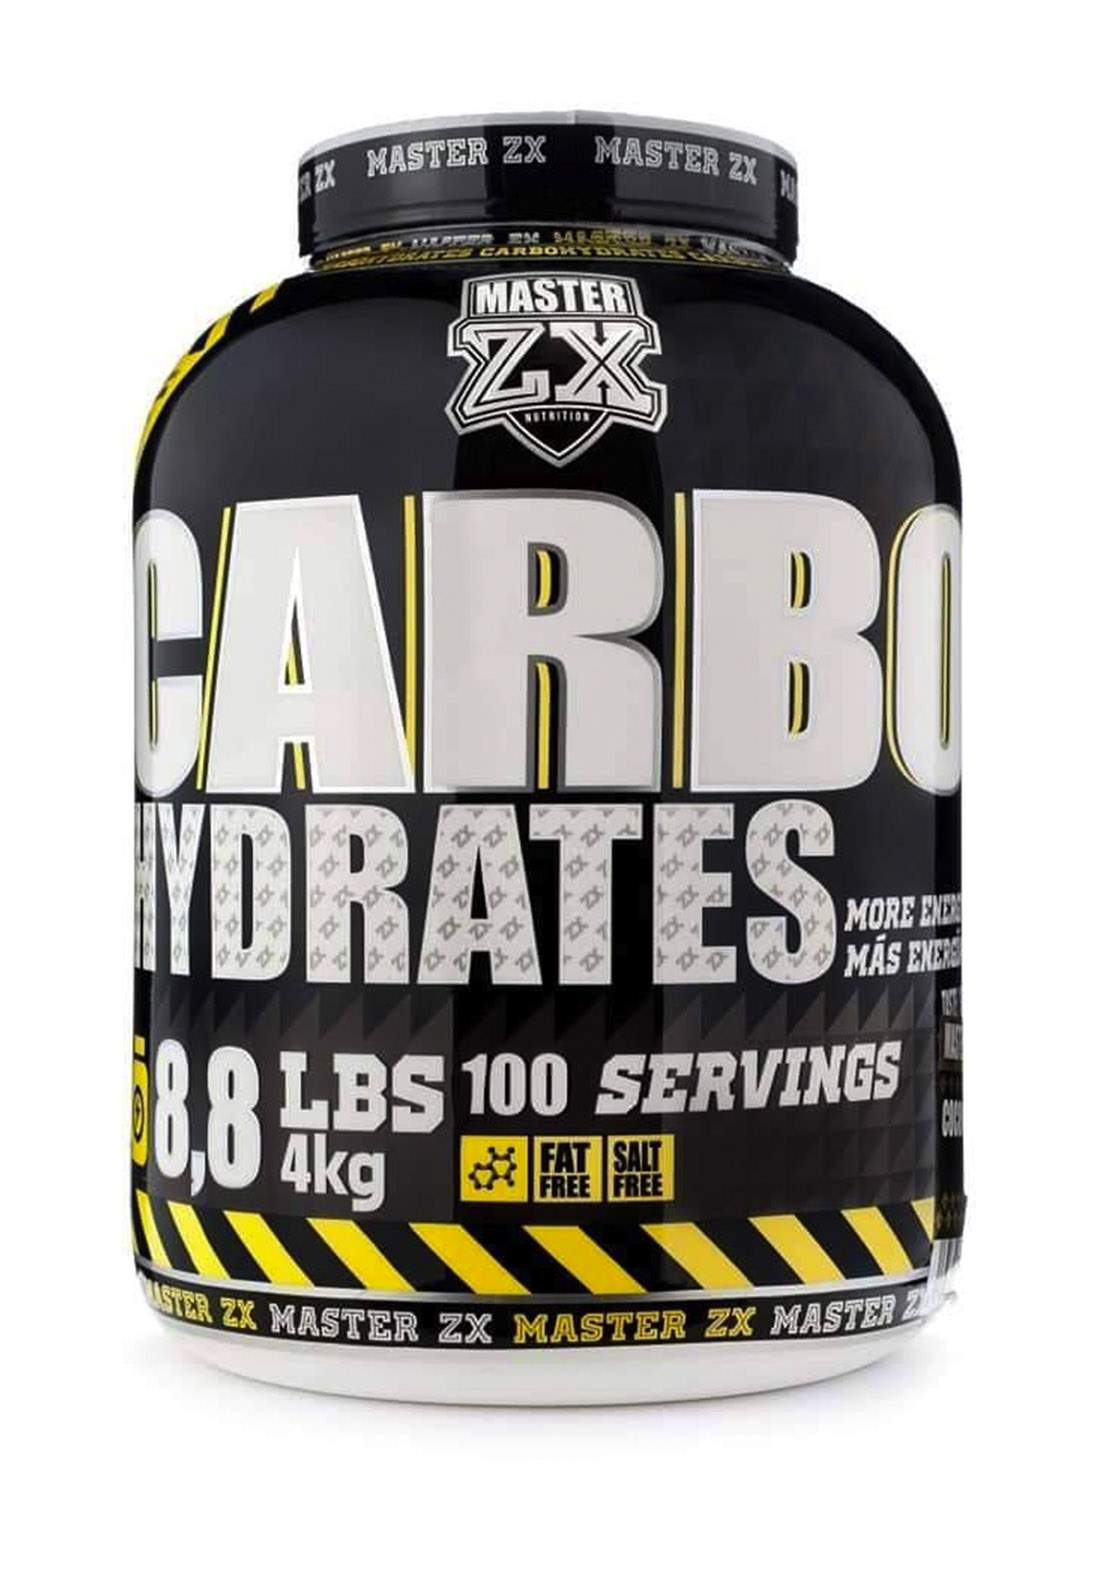 Master Zx Nutrition carbohydrates 4KG مكمل غذائي